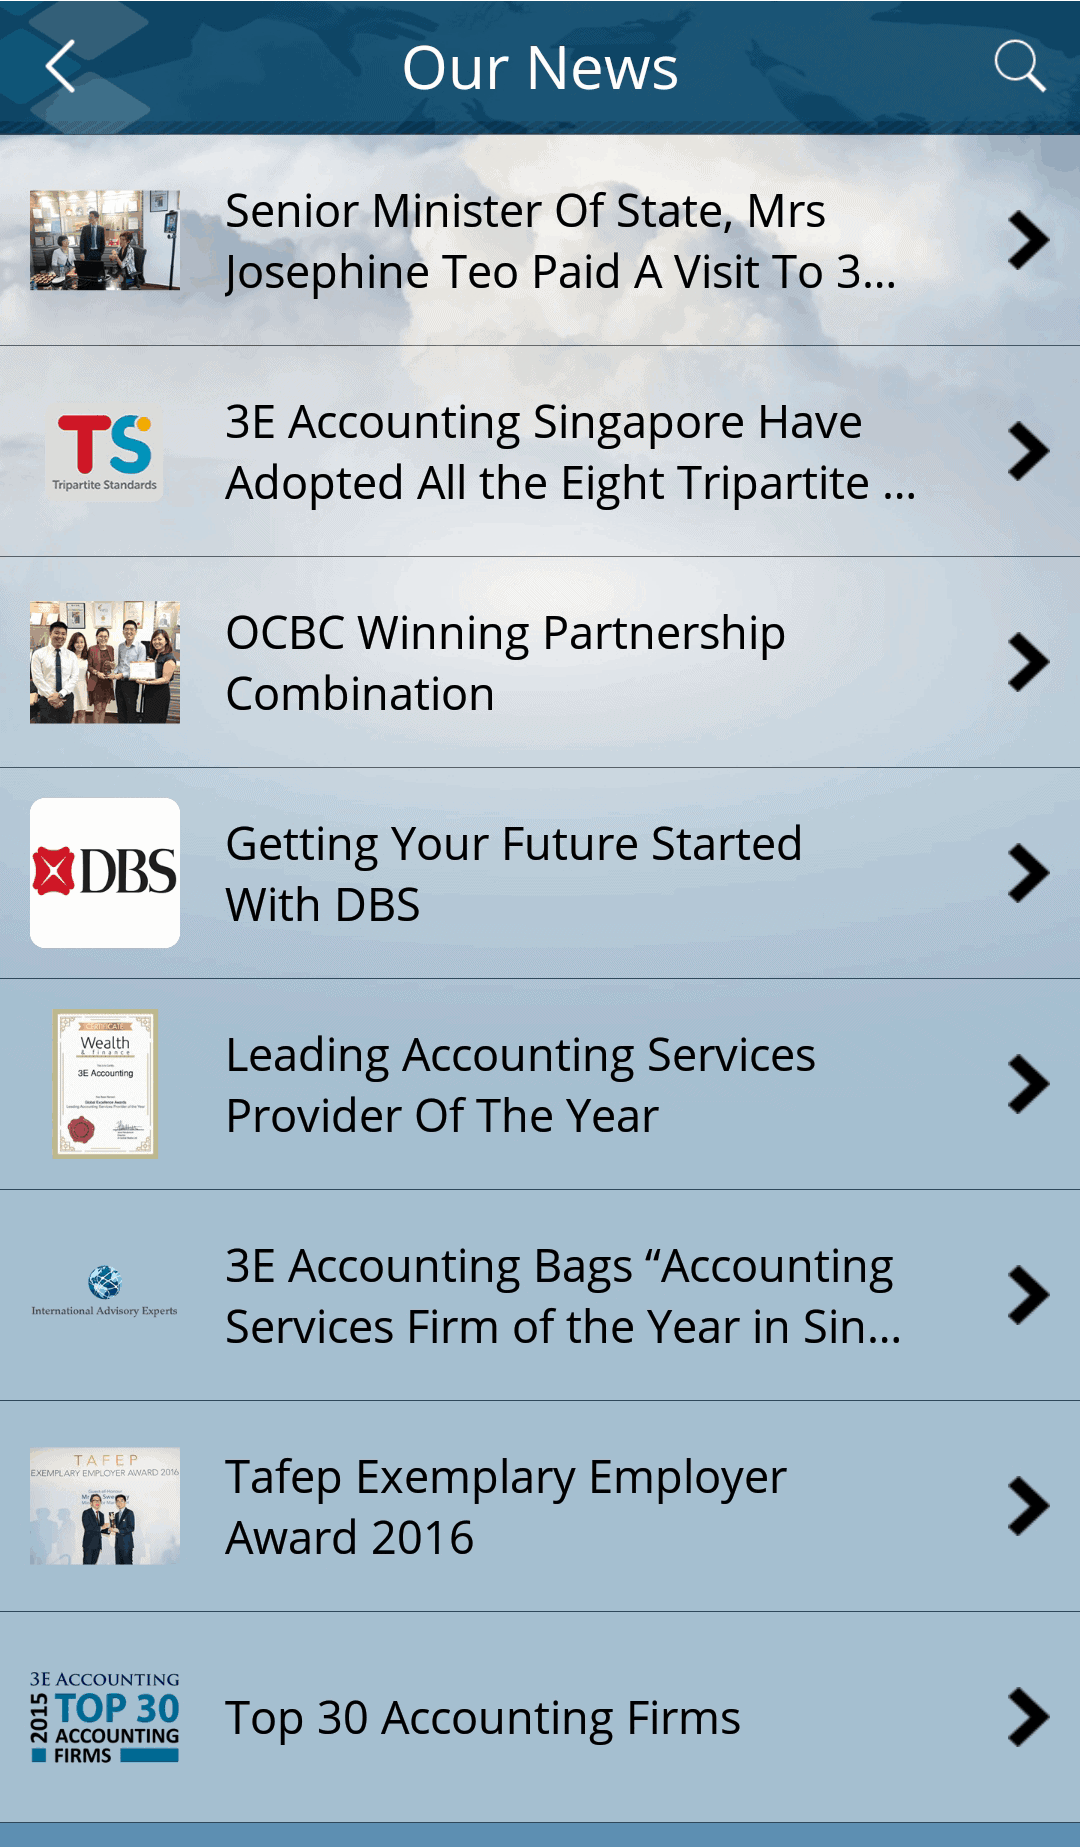 A list of all 3E Accounting news